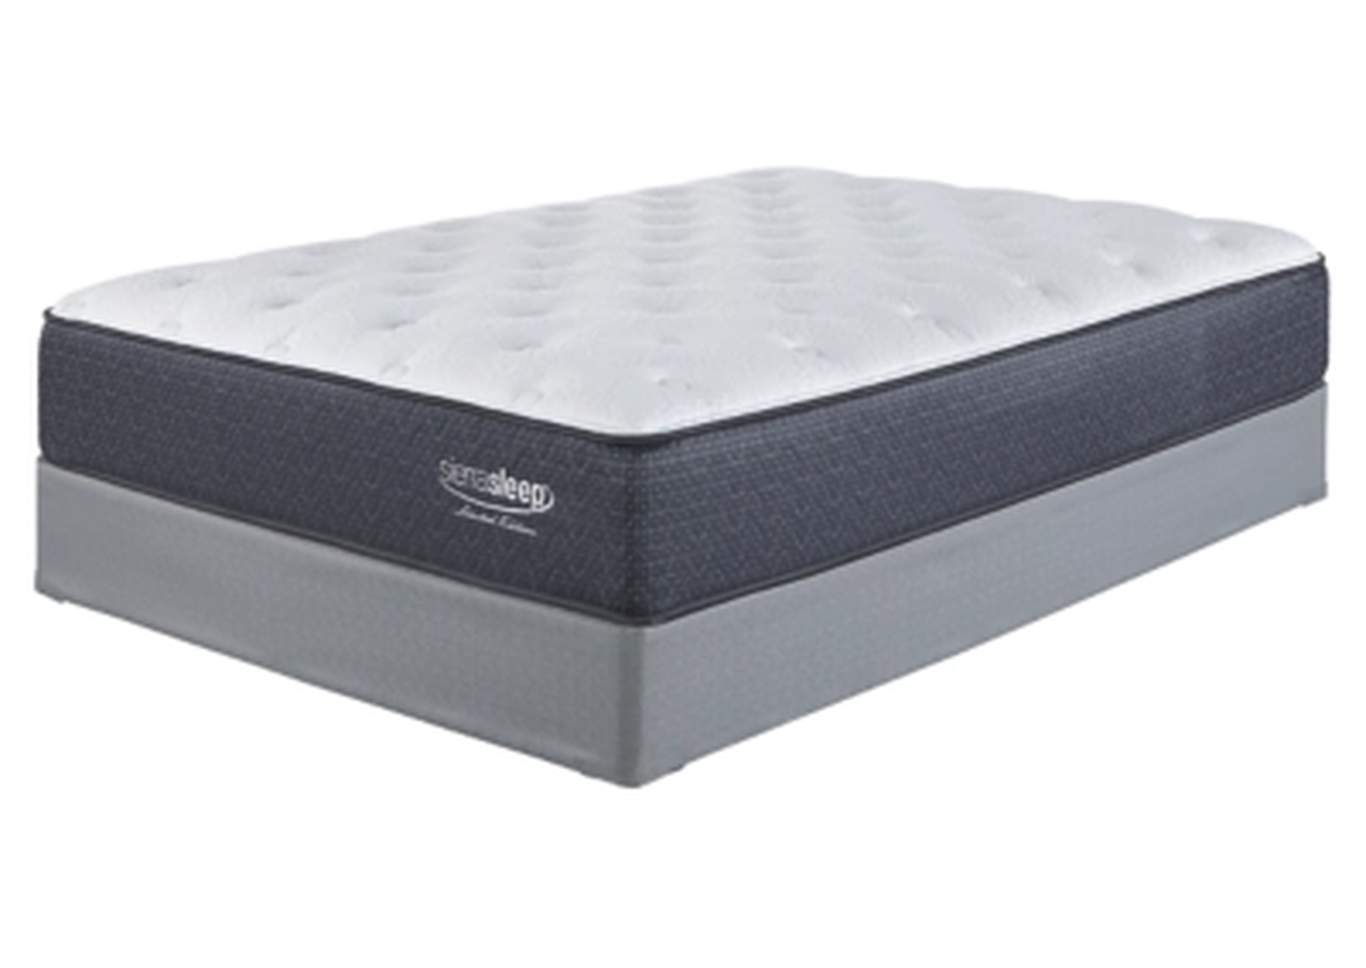 Limited Edition Plush White Queen Mattress w/Foundation,Sierra Sleep